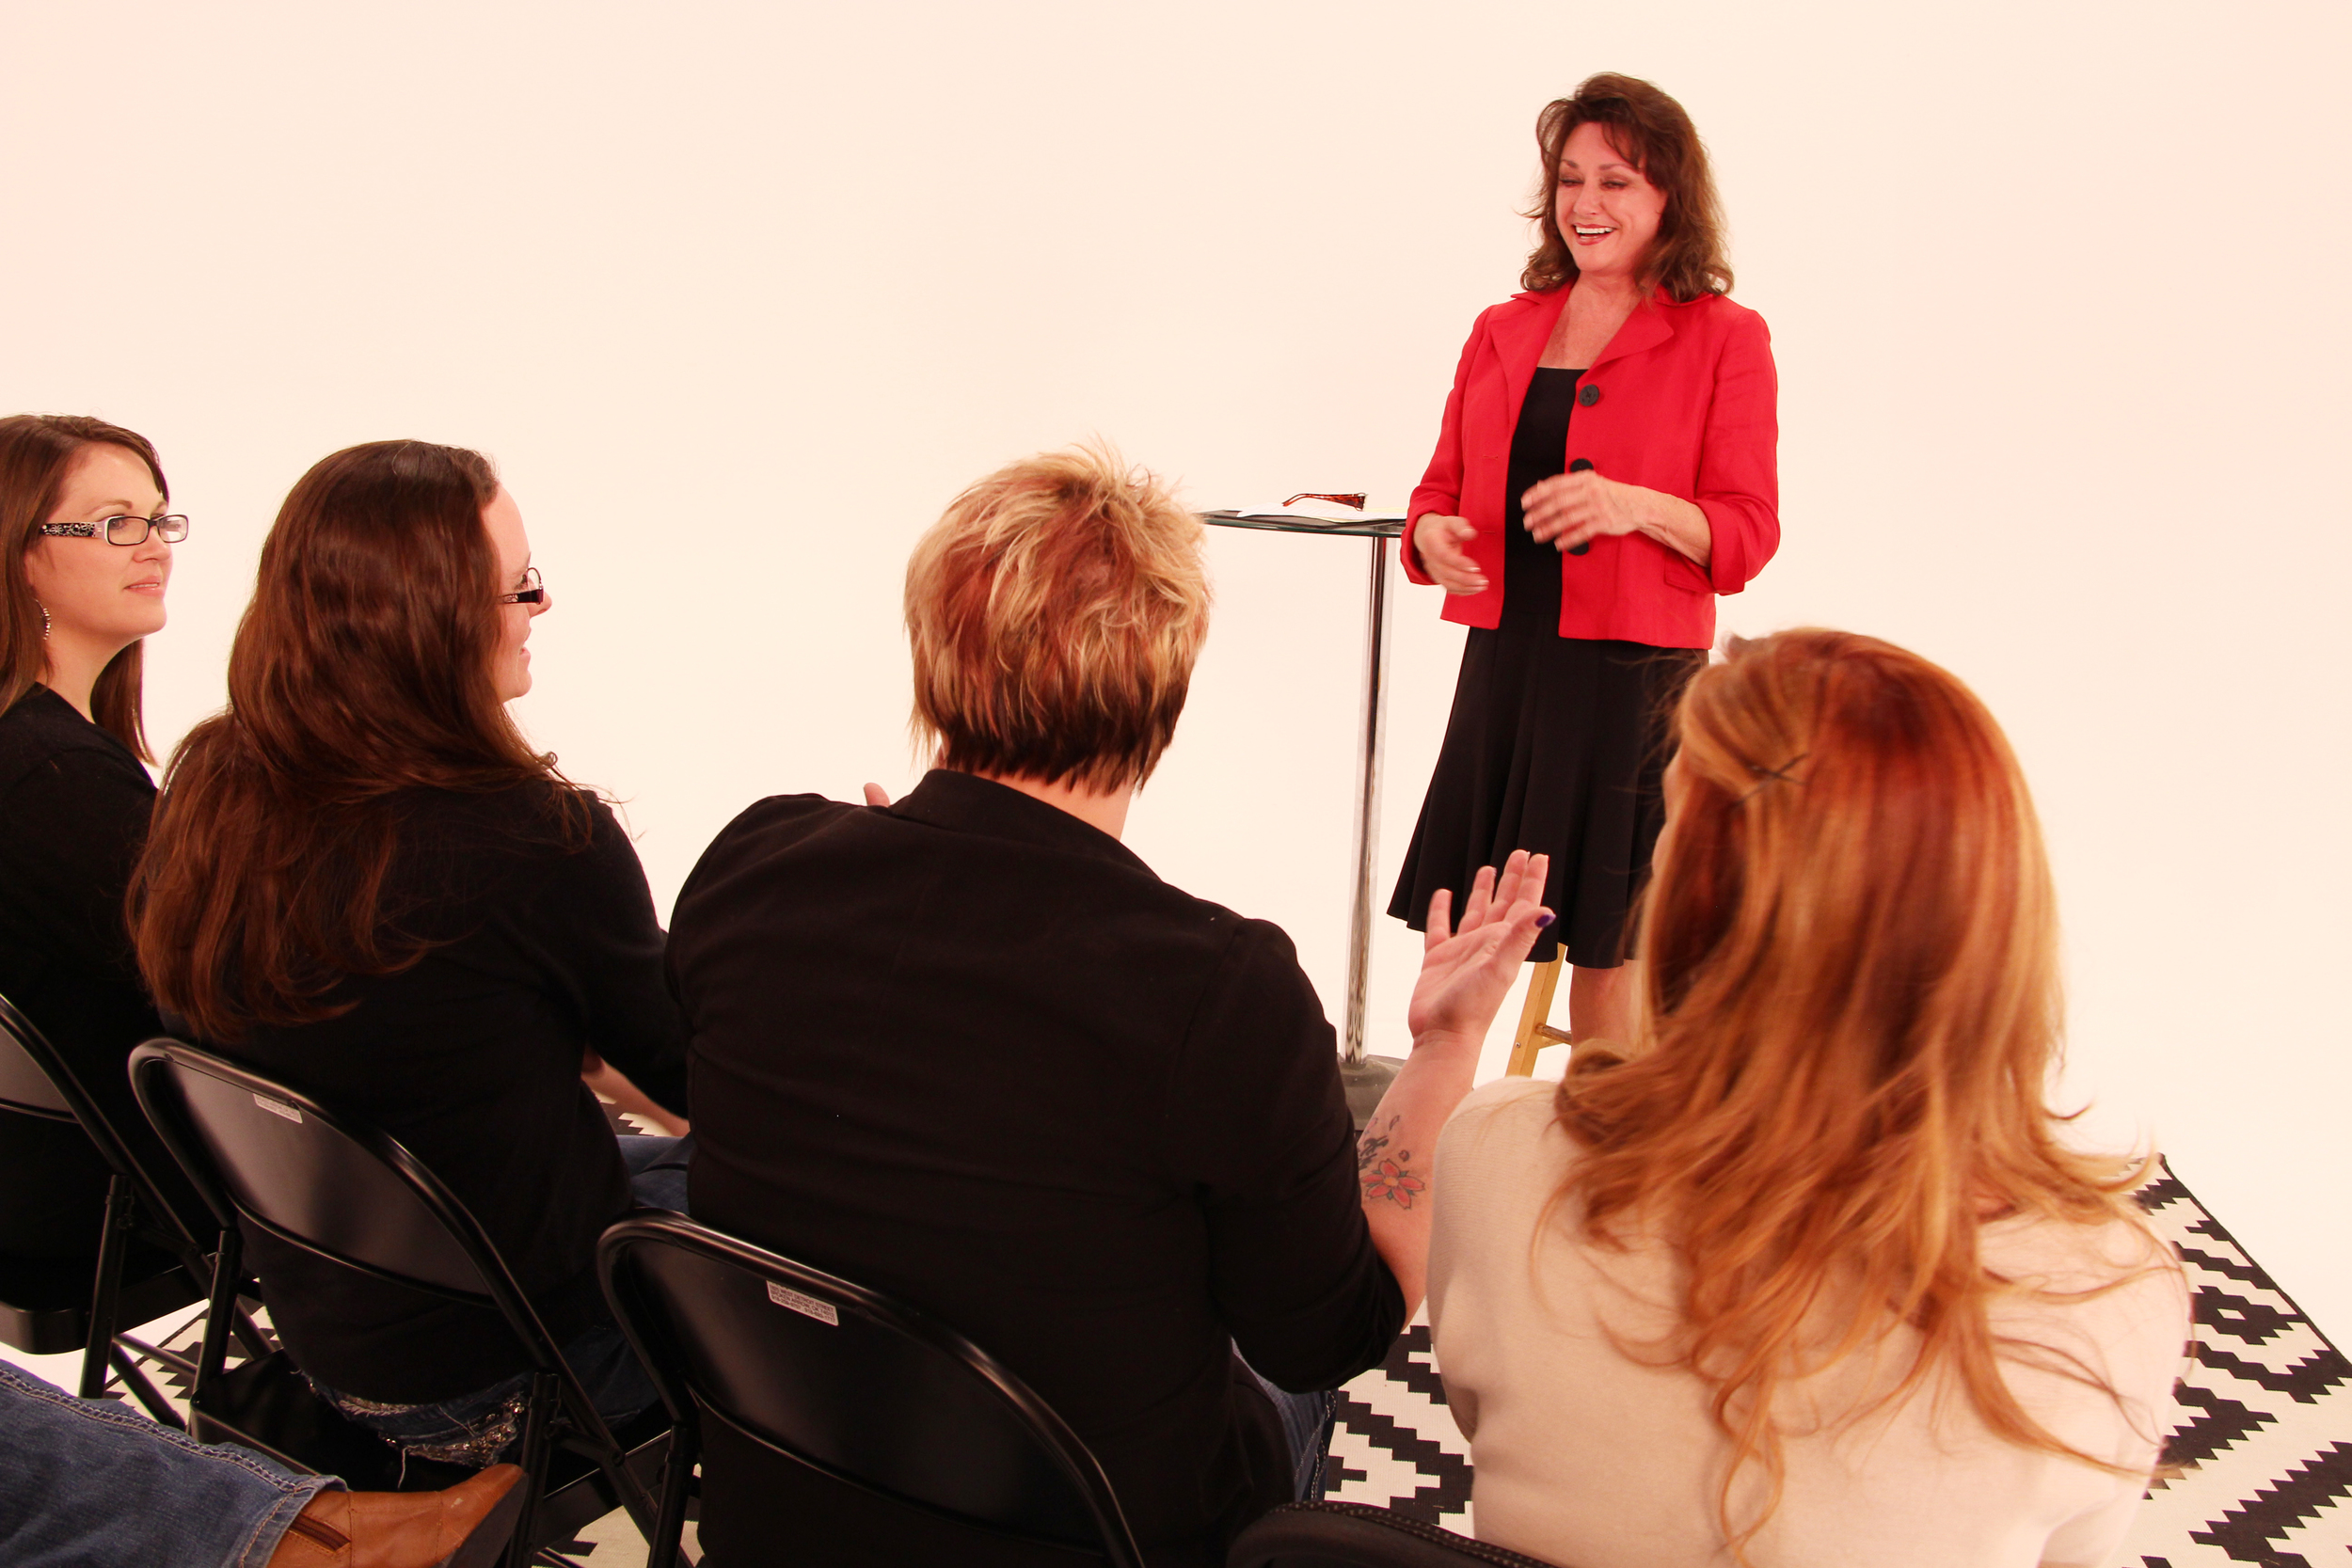 Speaking to young women